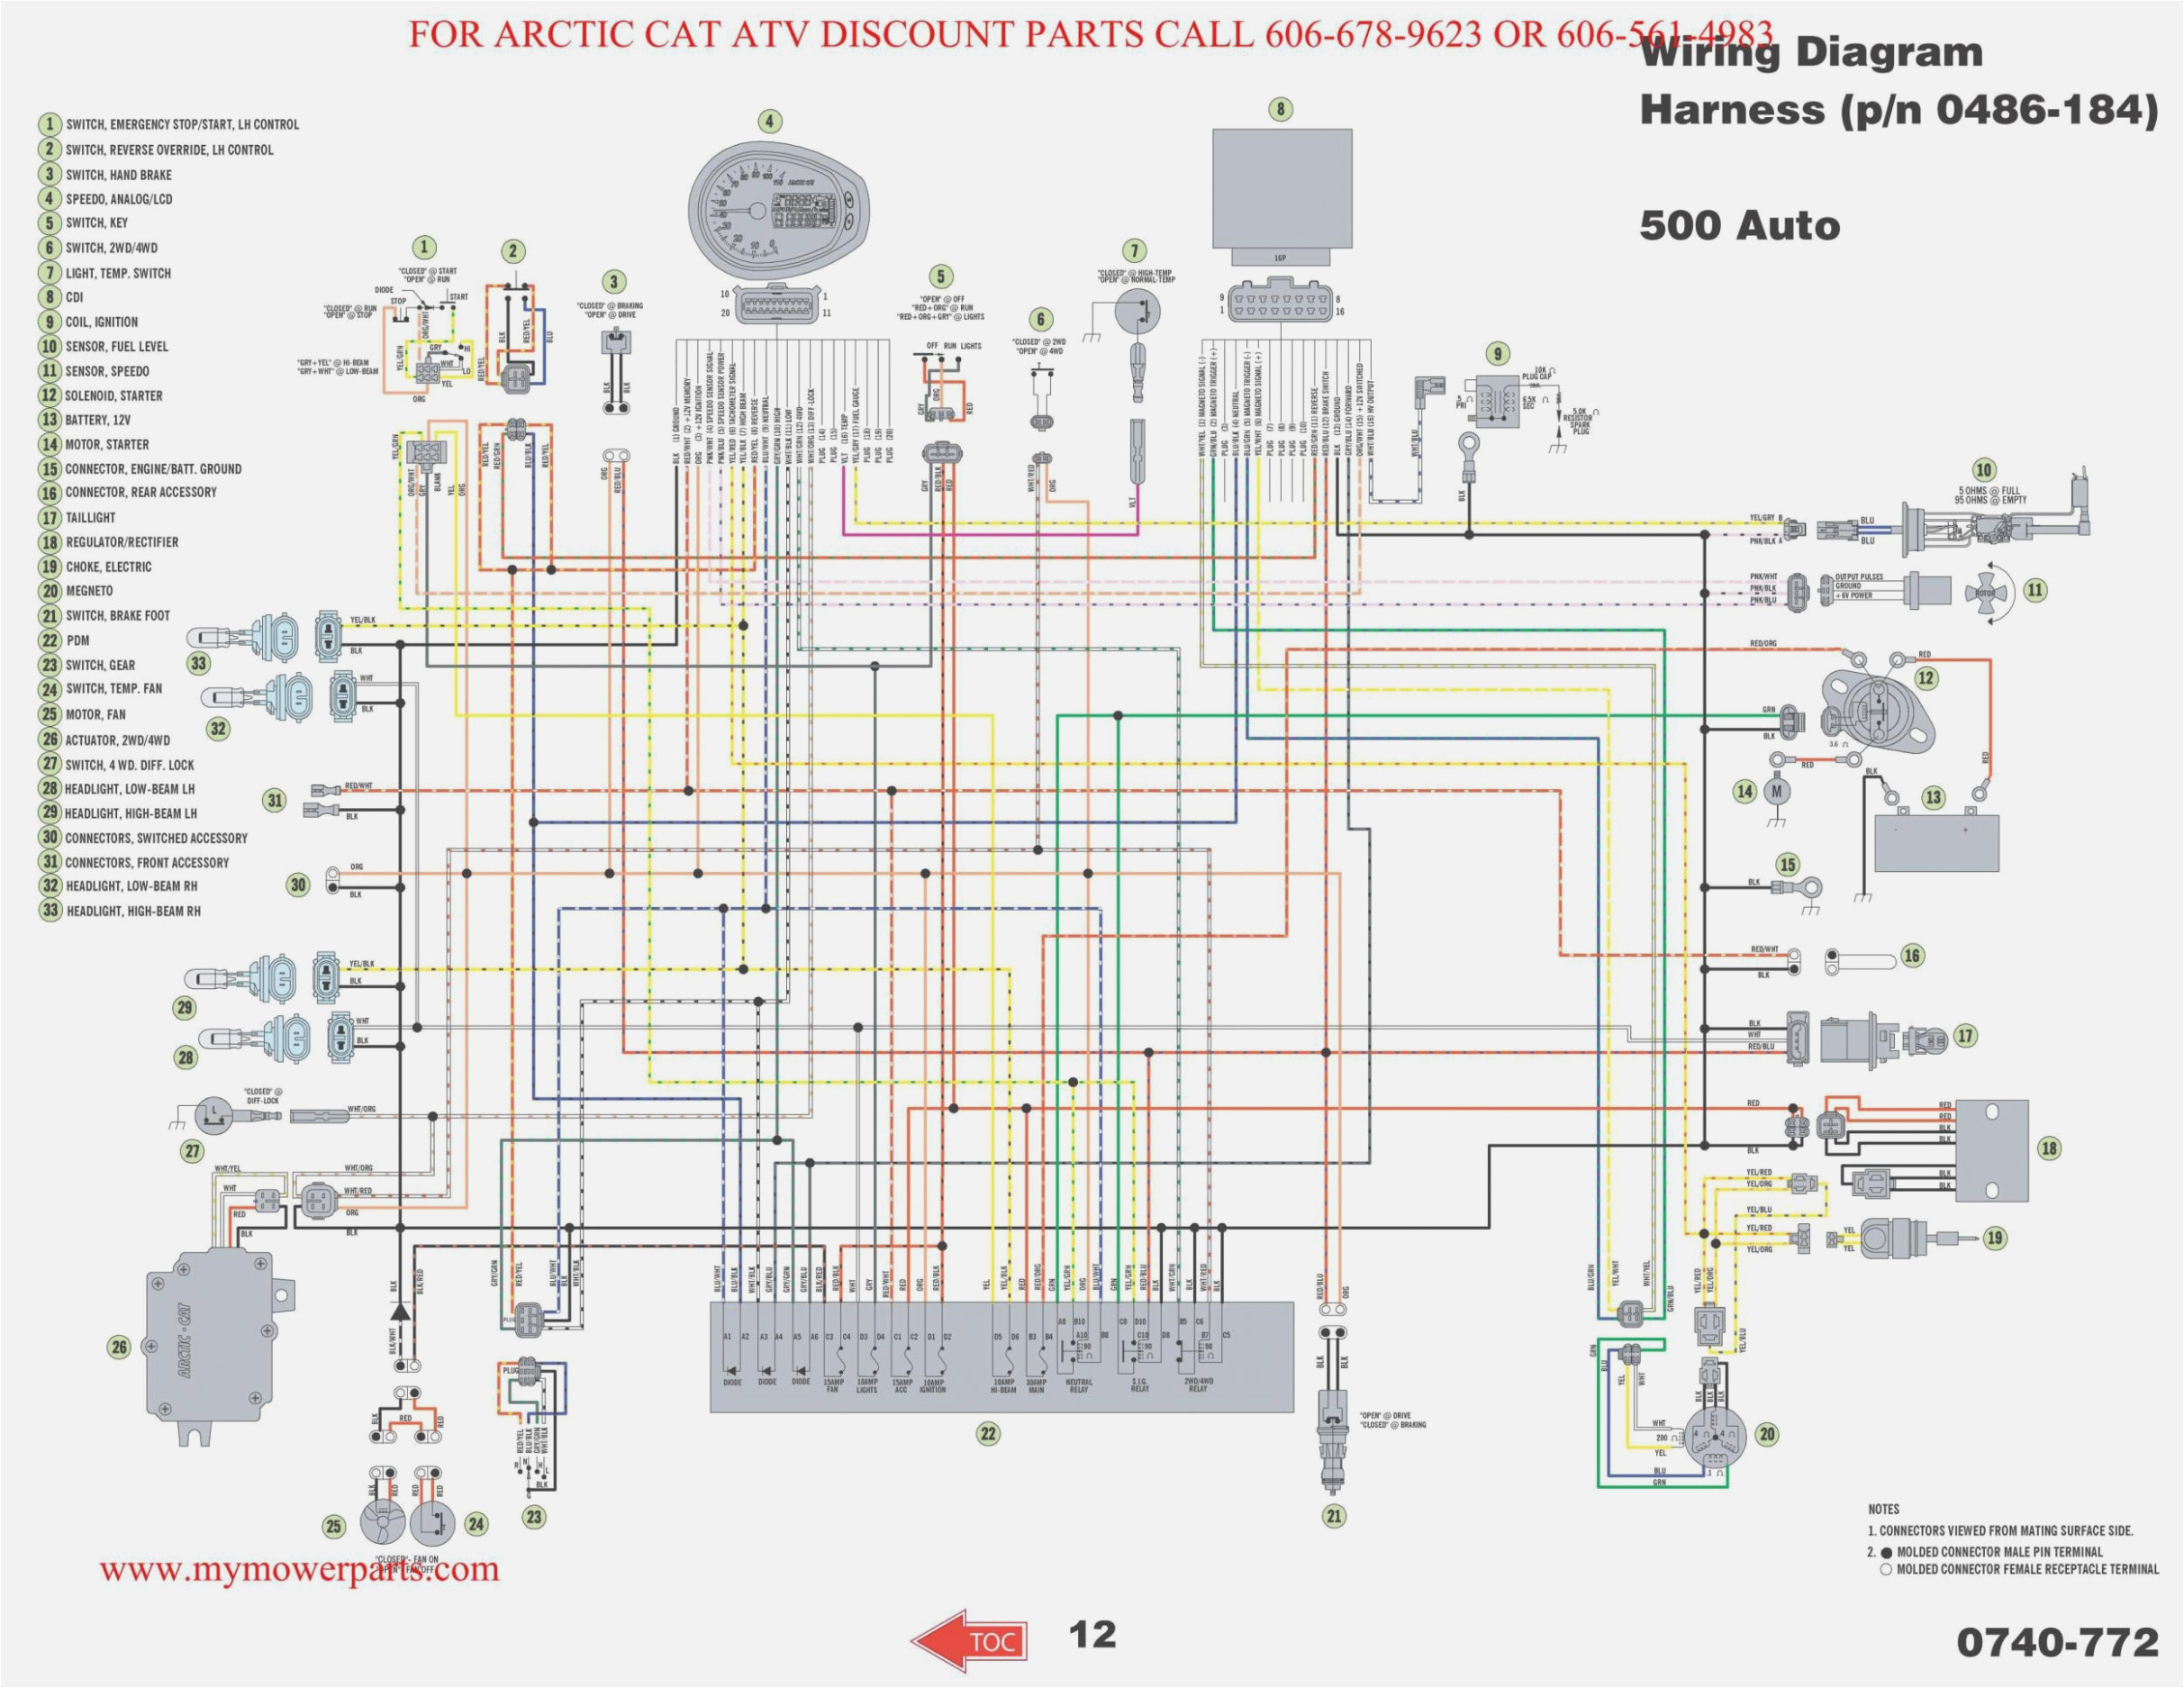 wrg 8908 polaris scrambler xp 1000 wiring diagram polaris scrambler xp 1000 wiring diagram